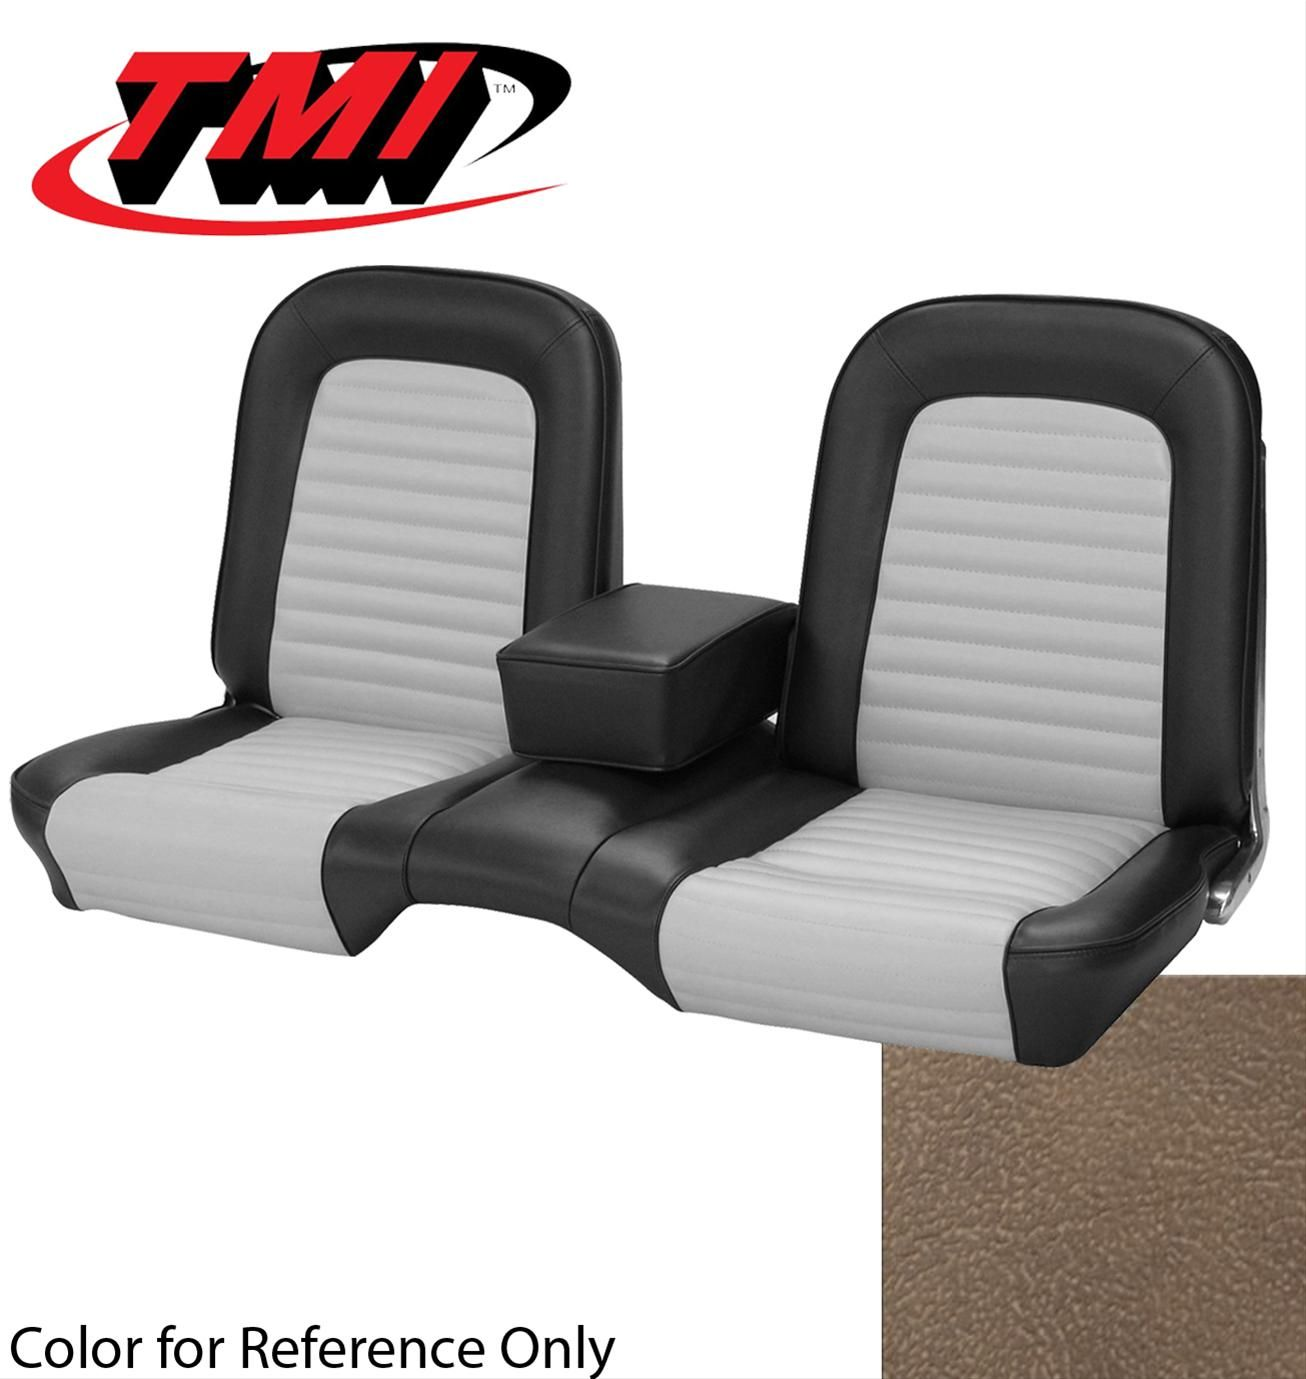 Tmi Bench Seat Summit Racing Ford Bronco Seating Seat Cover